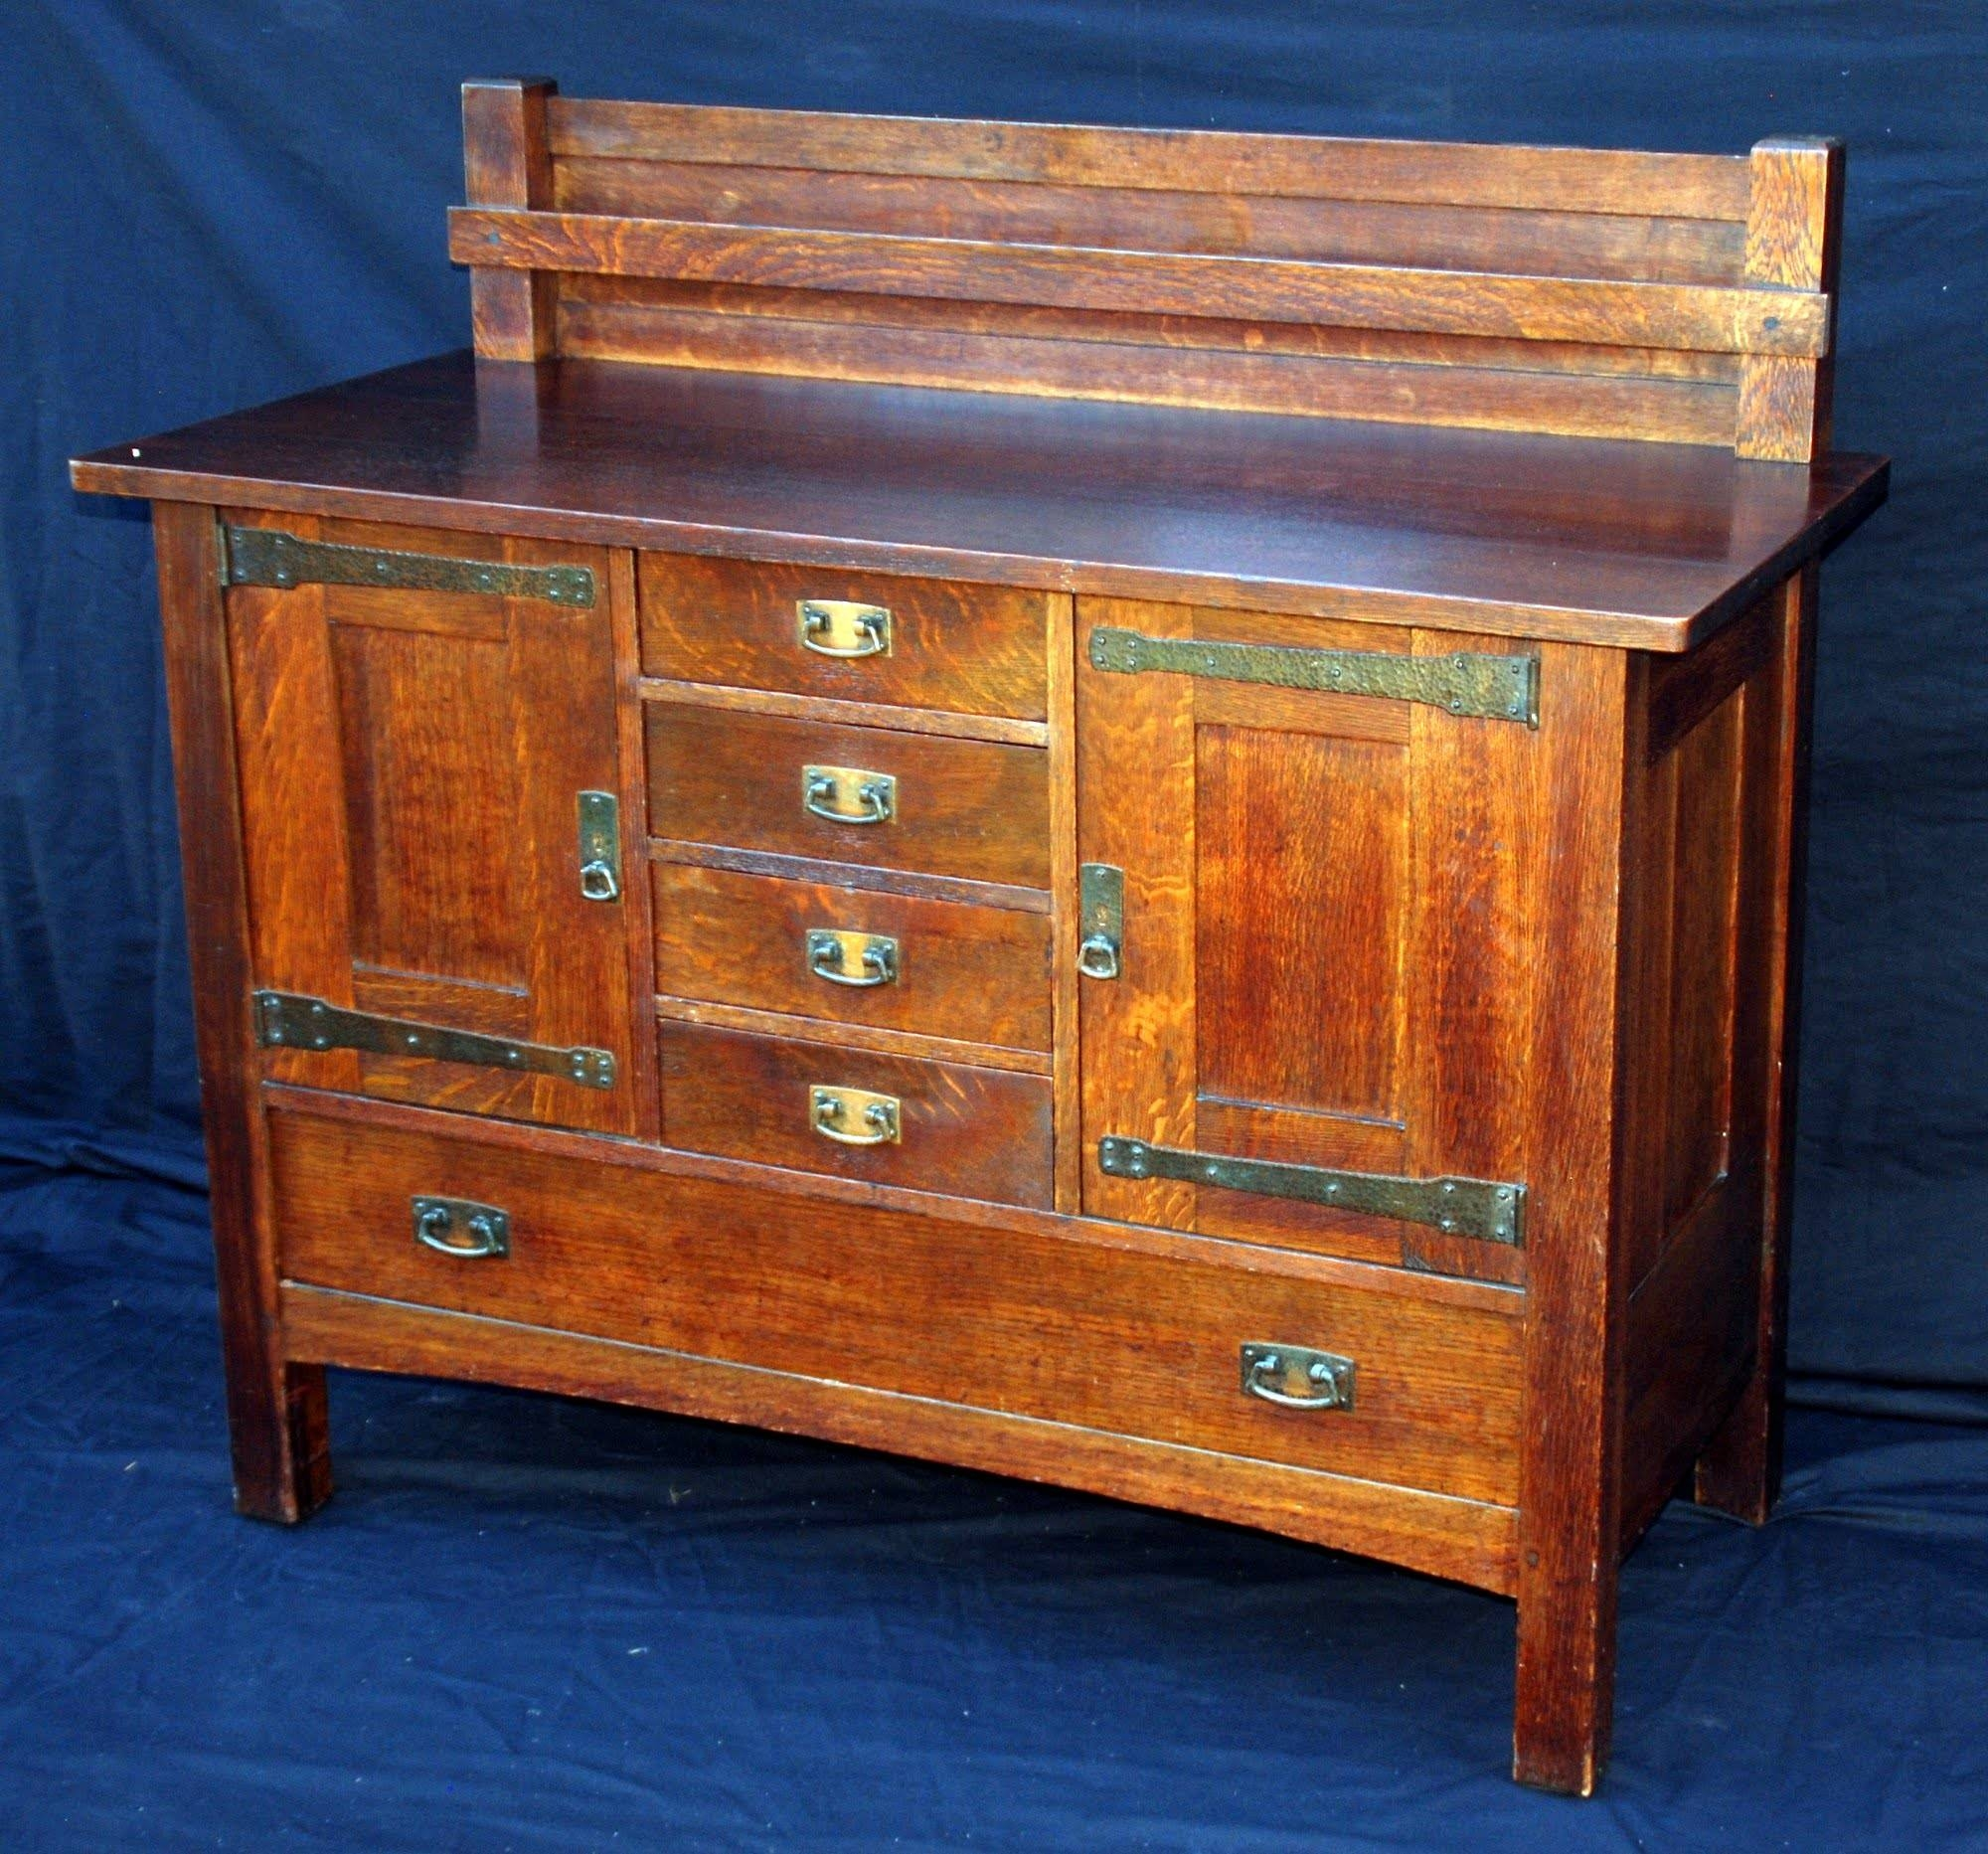 Voorhees Craftsman Mission Oak Furniture – Exceptional Original L With Regard To Stickley Sideboards (View 5 of 15)